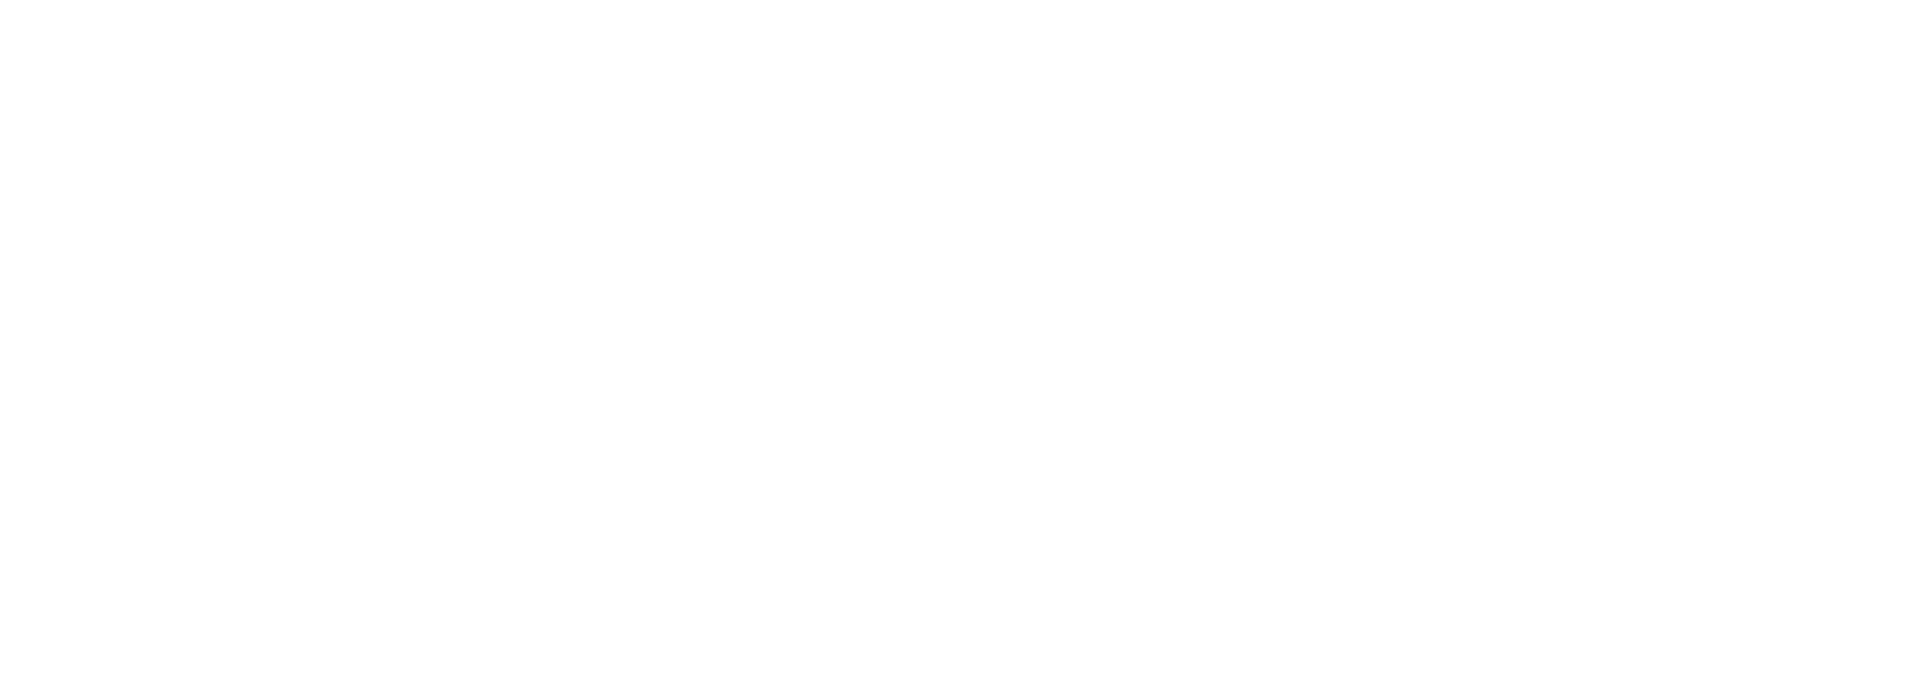 150 million people are in the workforce